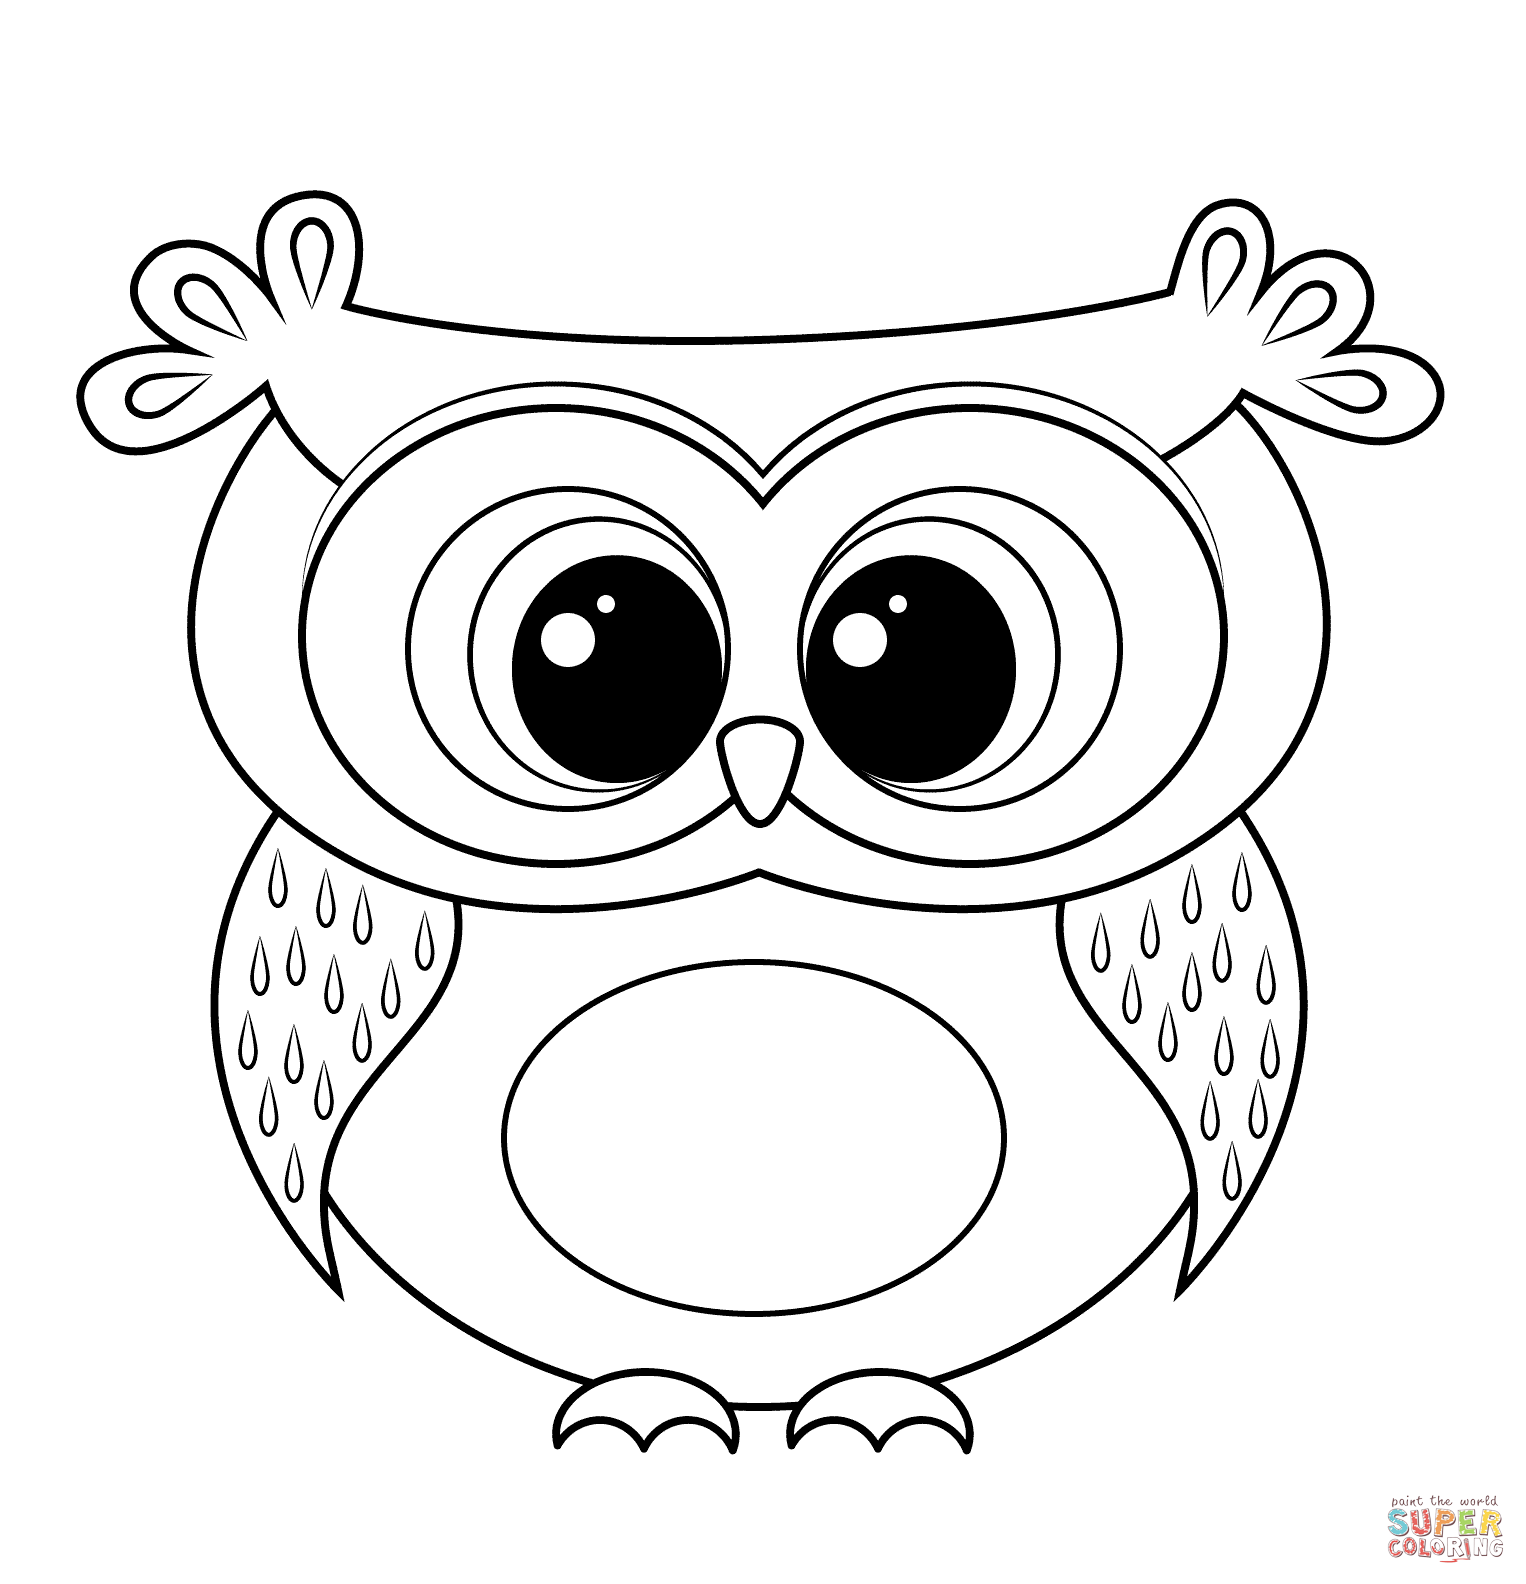 images of owls to color cartoon owl coloring page free printable coloring pages color owls images to of